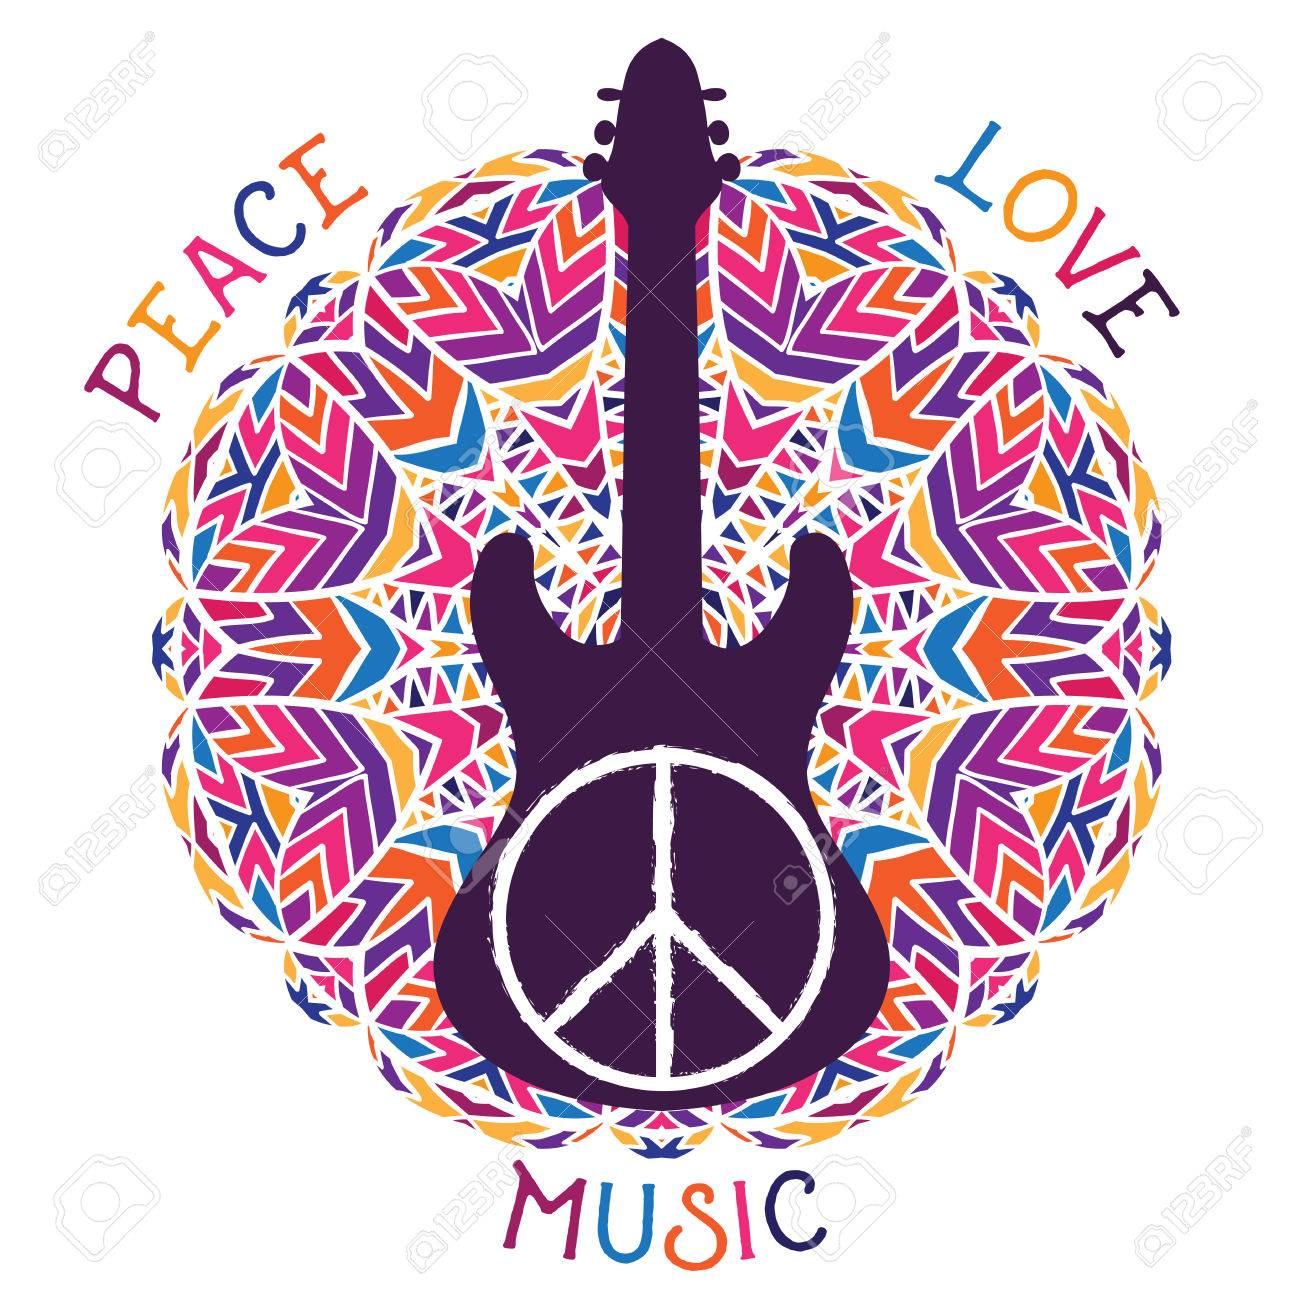 Hippie Peace Symbol Peace Love Music Sign And Guitar On Ornate Royalty Free Cliparts Vectors And Stock Illustration Image 56848811